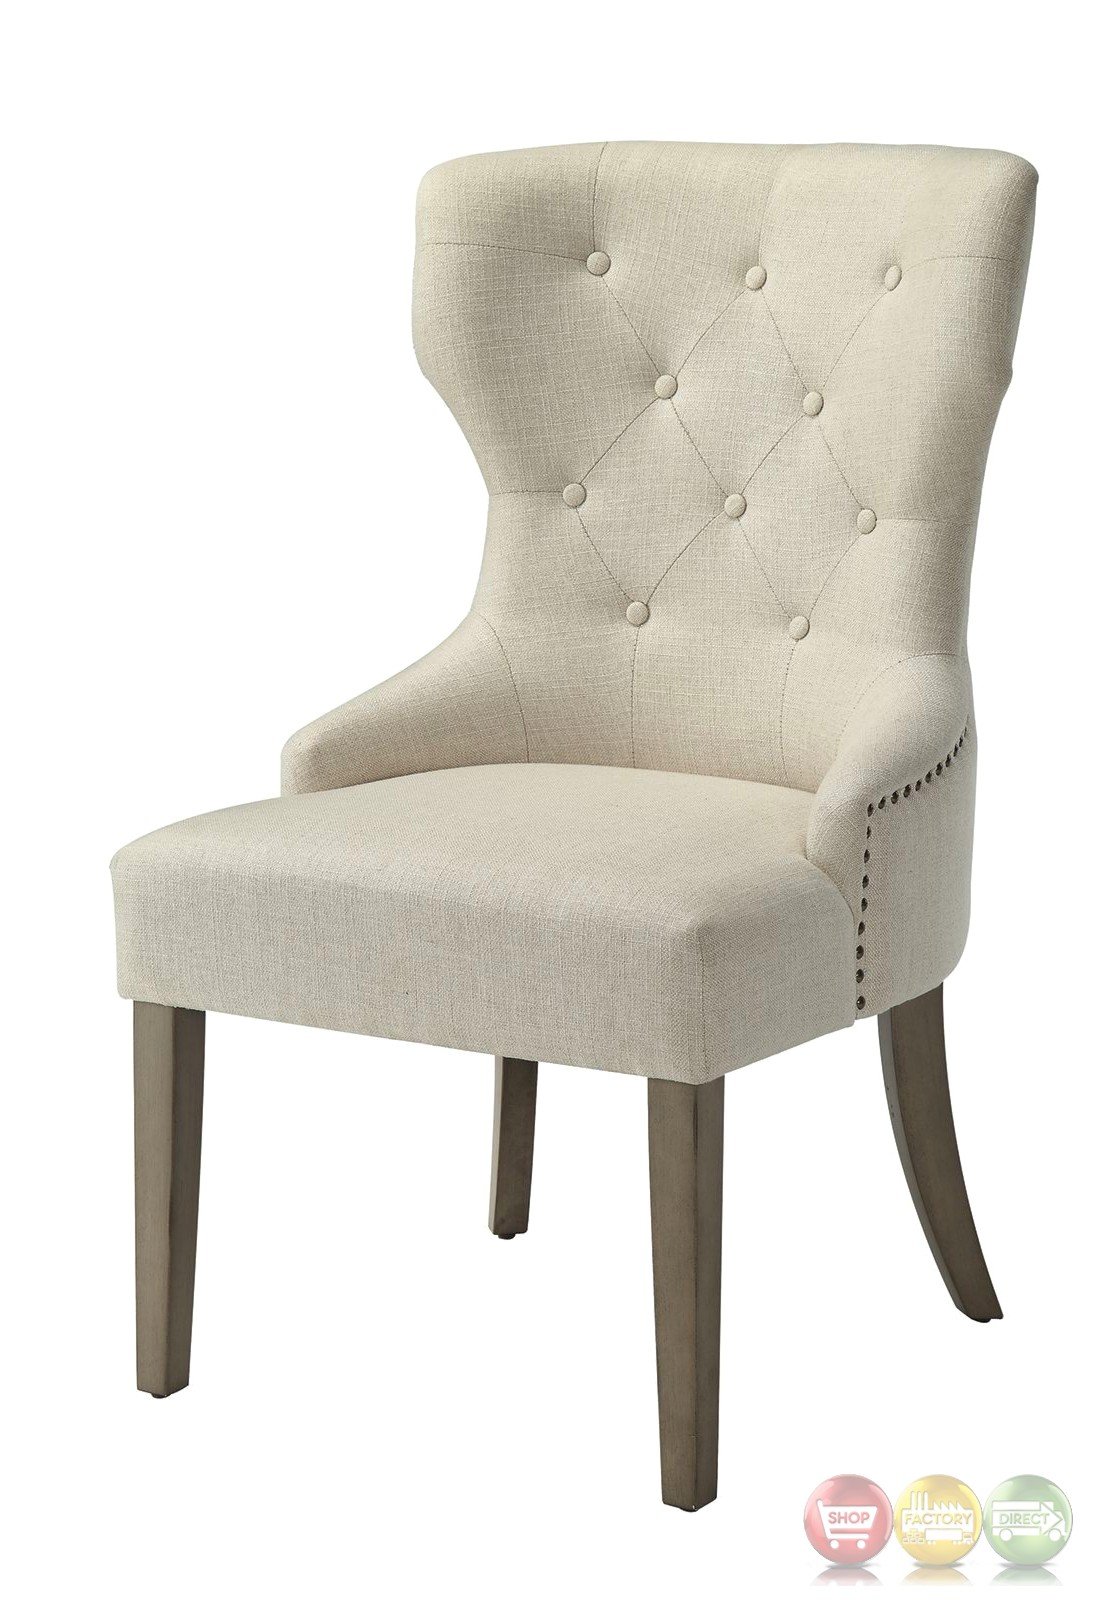 dining wingback chair for baby room florence shop